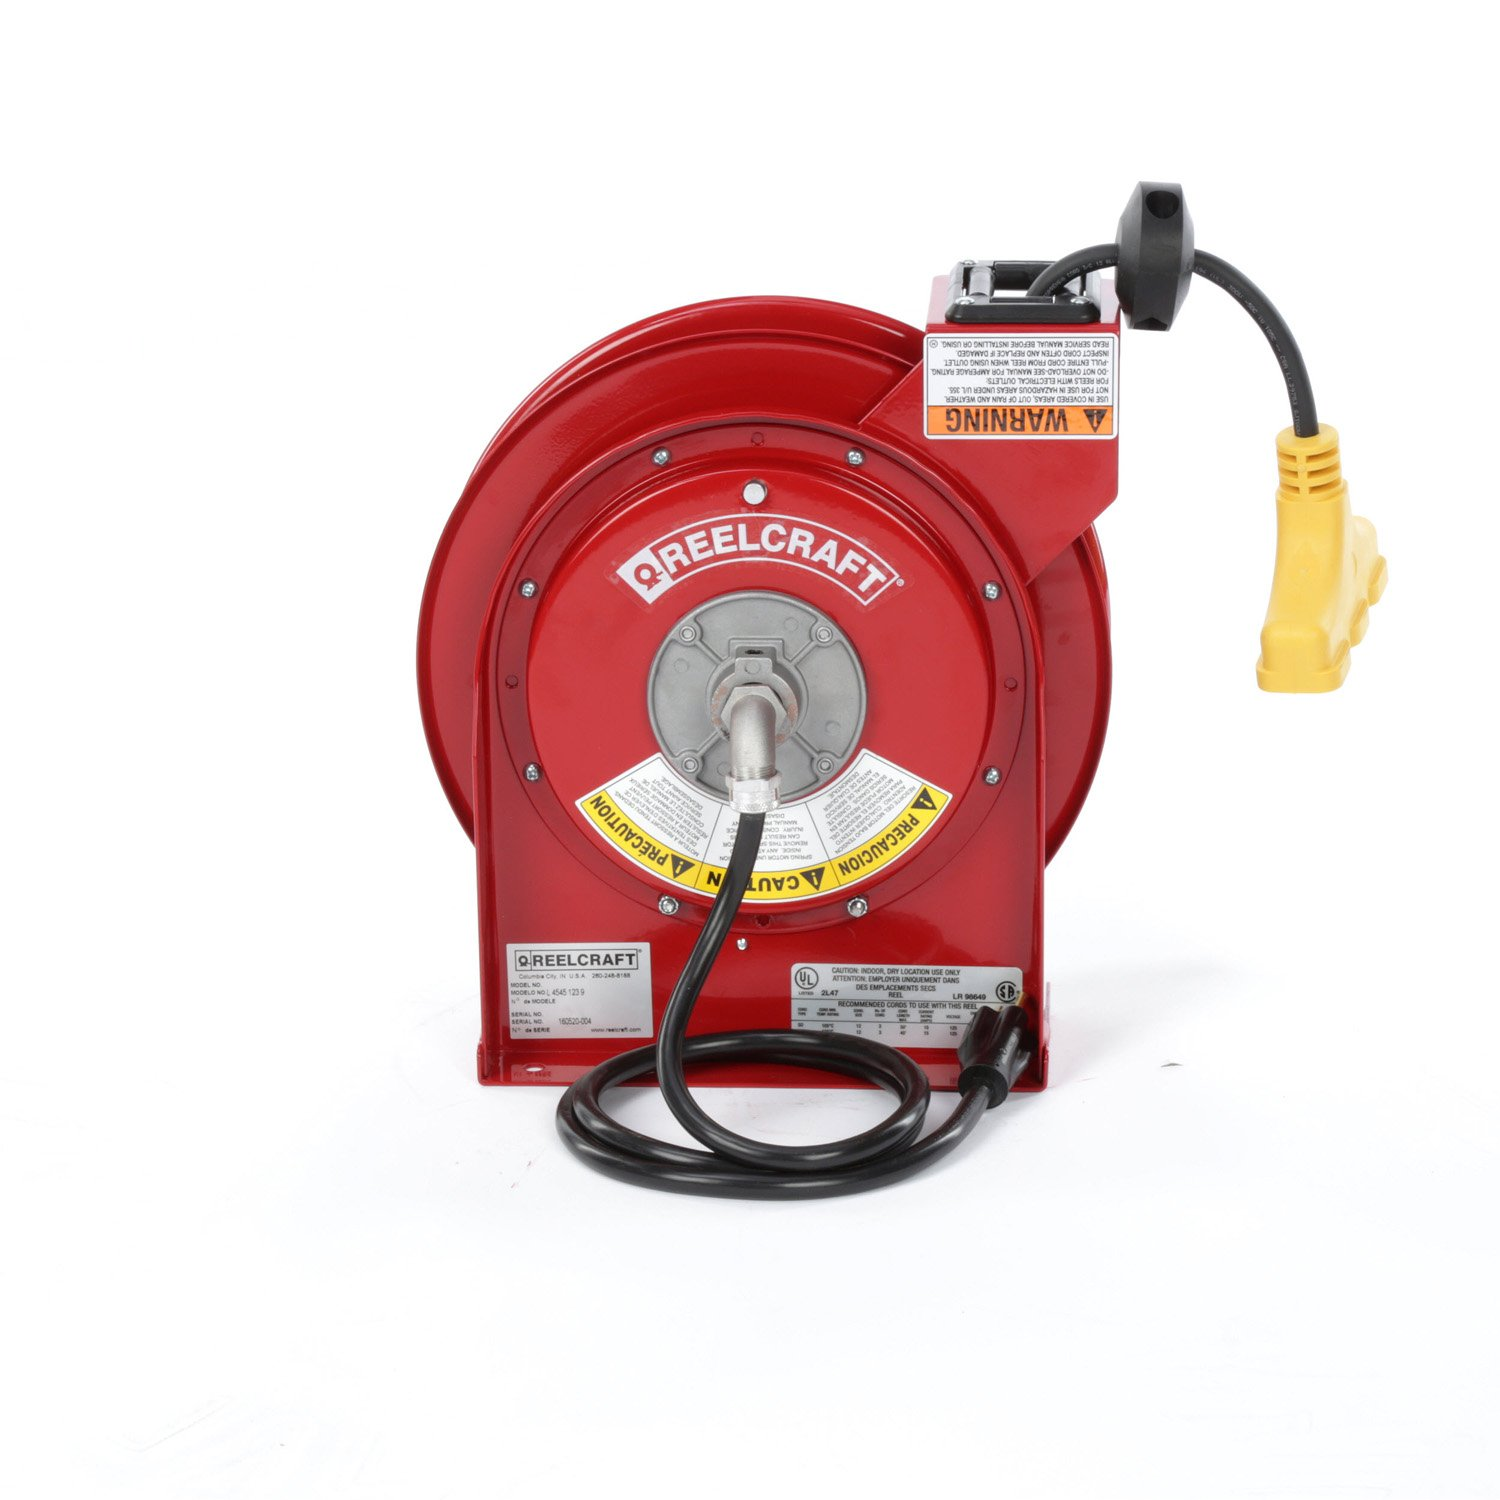 REELCRAFT 45 Ft. Power Cord Reel, Triple Outlet by Reelcraft